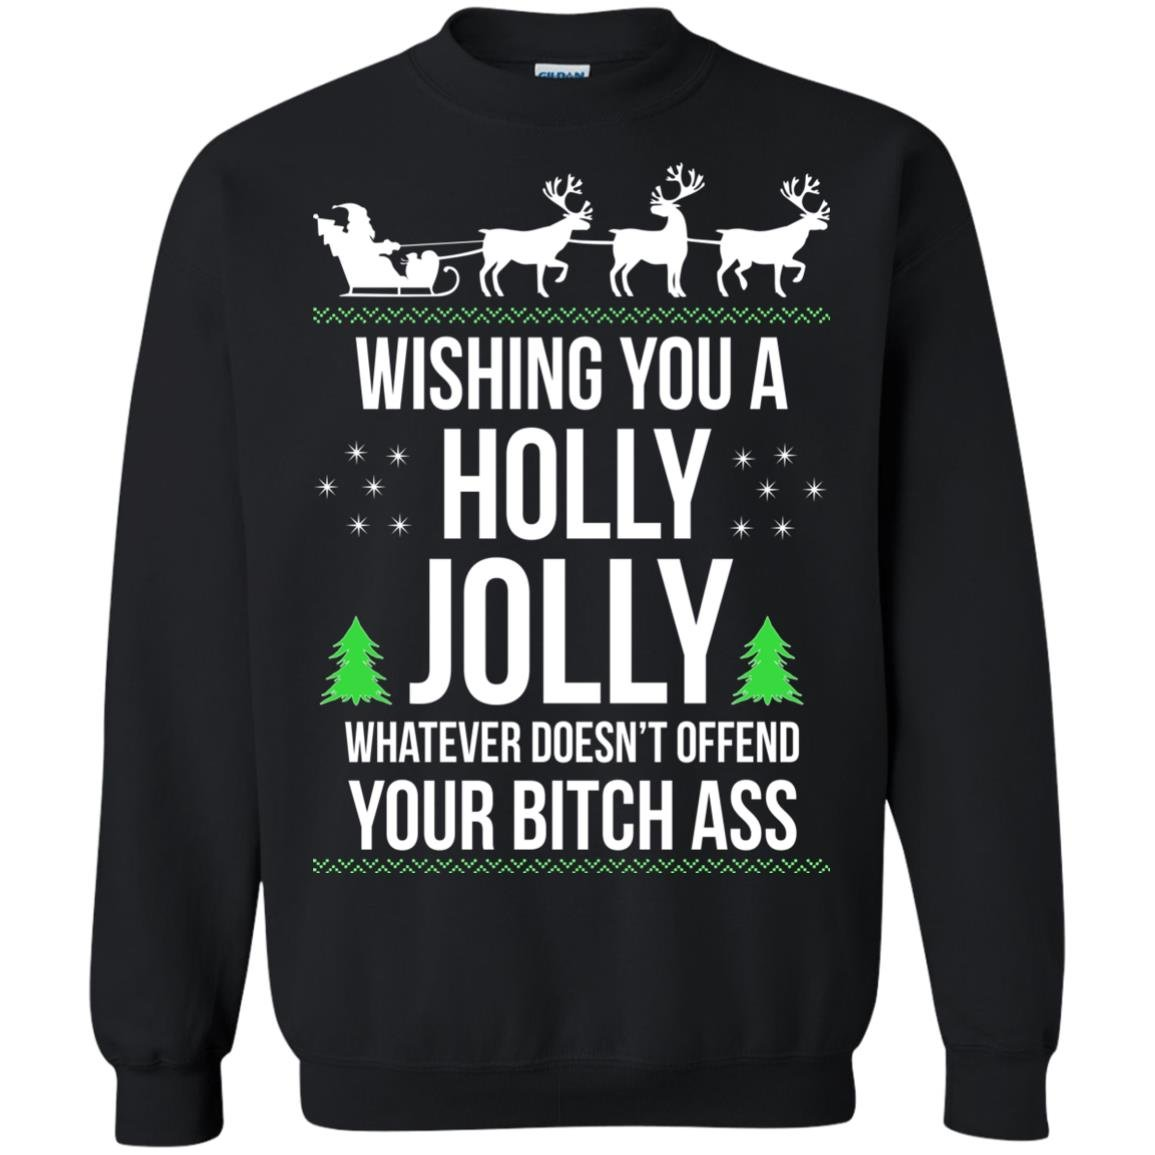 image 1188 - Wishing you a holly jolly whatever doesn't offend your bitch ass sweater, shirt